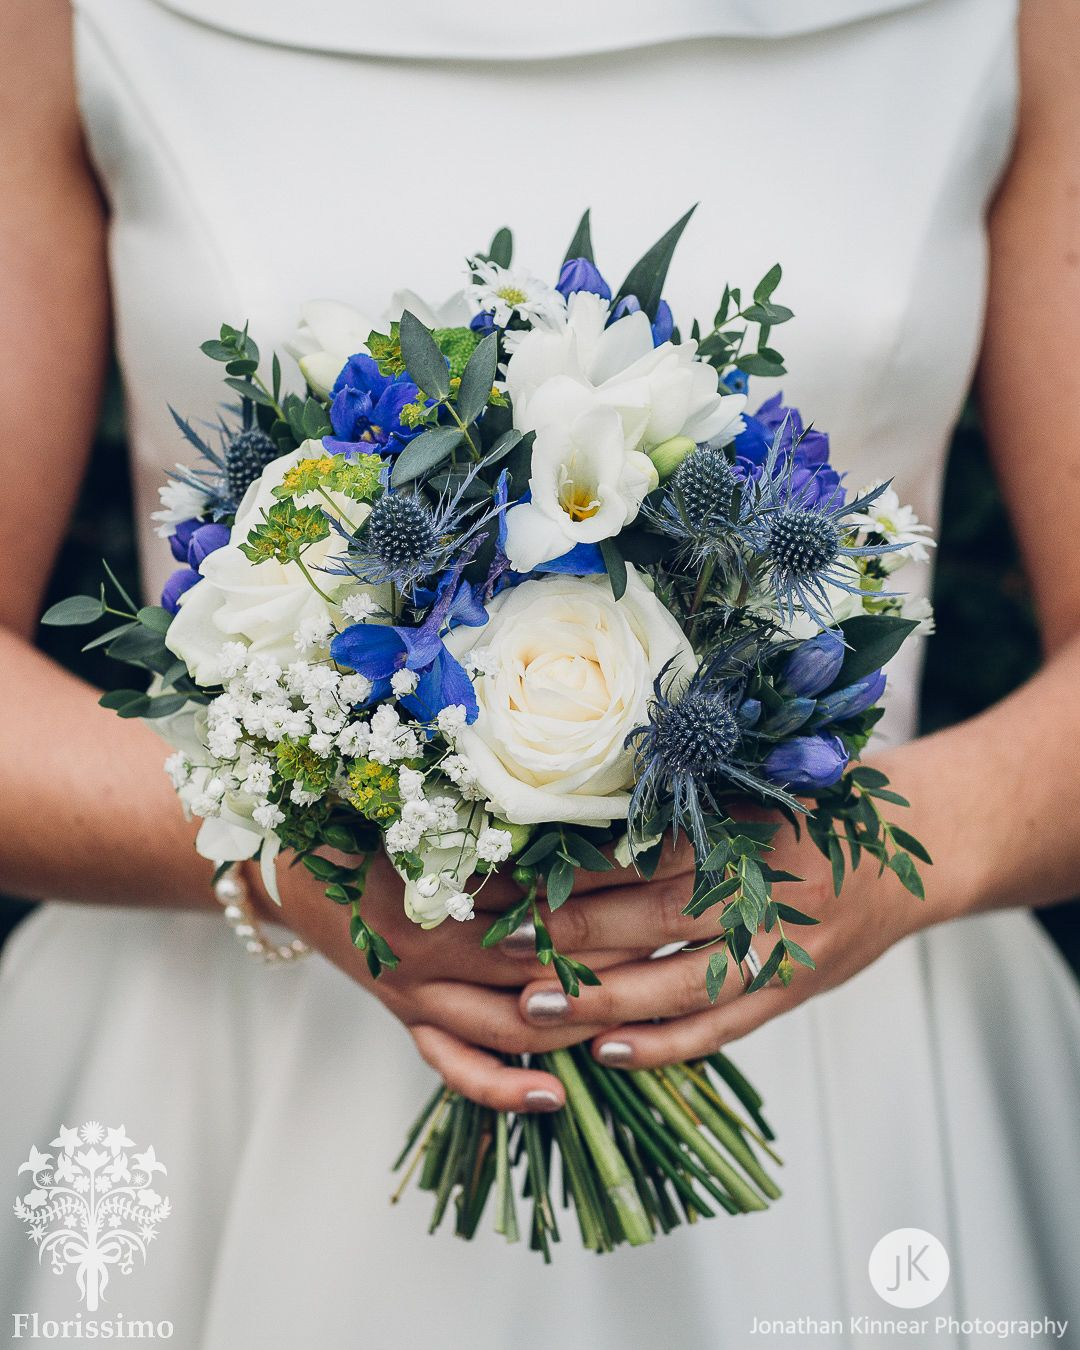 A Dainty, Rustic Bridal Bouquet Of White Avalanche Roses